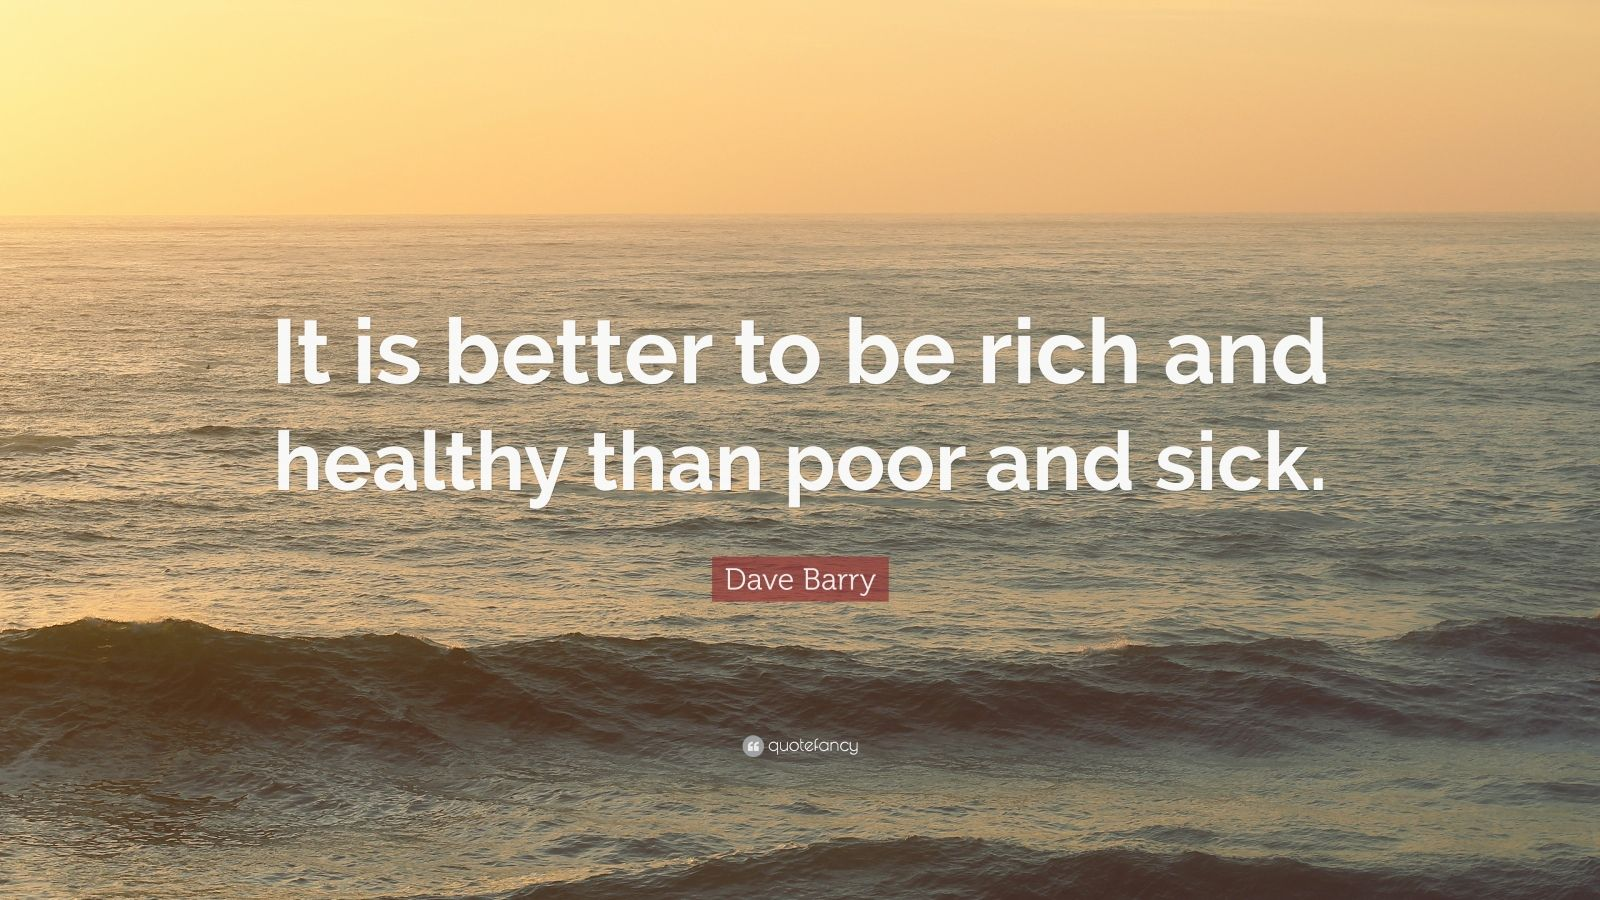 Honest and poor is better than being dishonest and rich